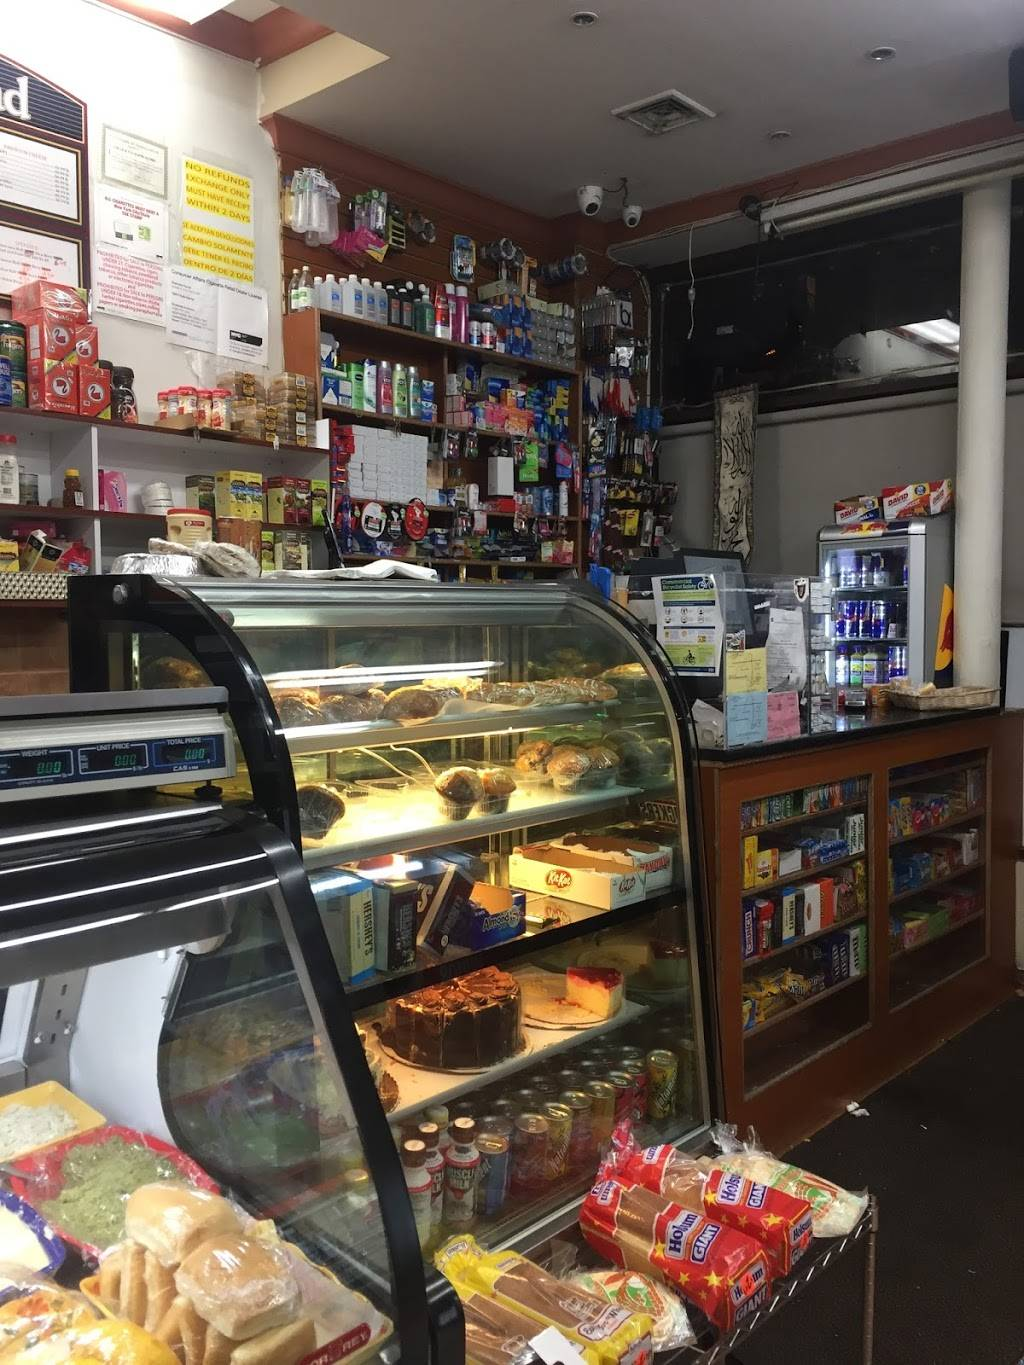 Grab & Go Food | meal takeaway | 2 W 129th St #1, New York, NY 10027, USA | 2128607777 OR +1 212-860-7777